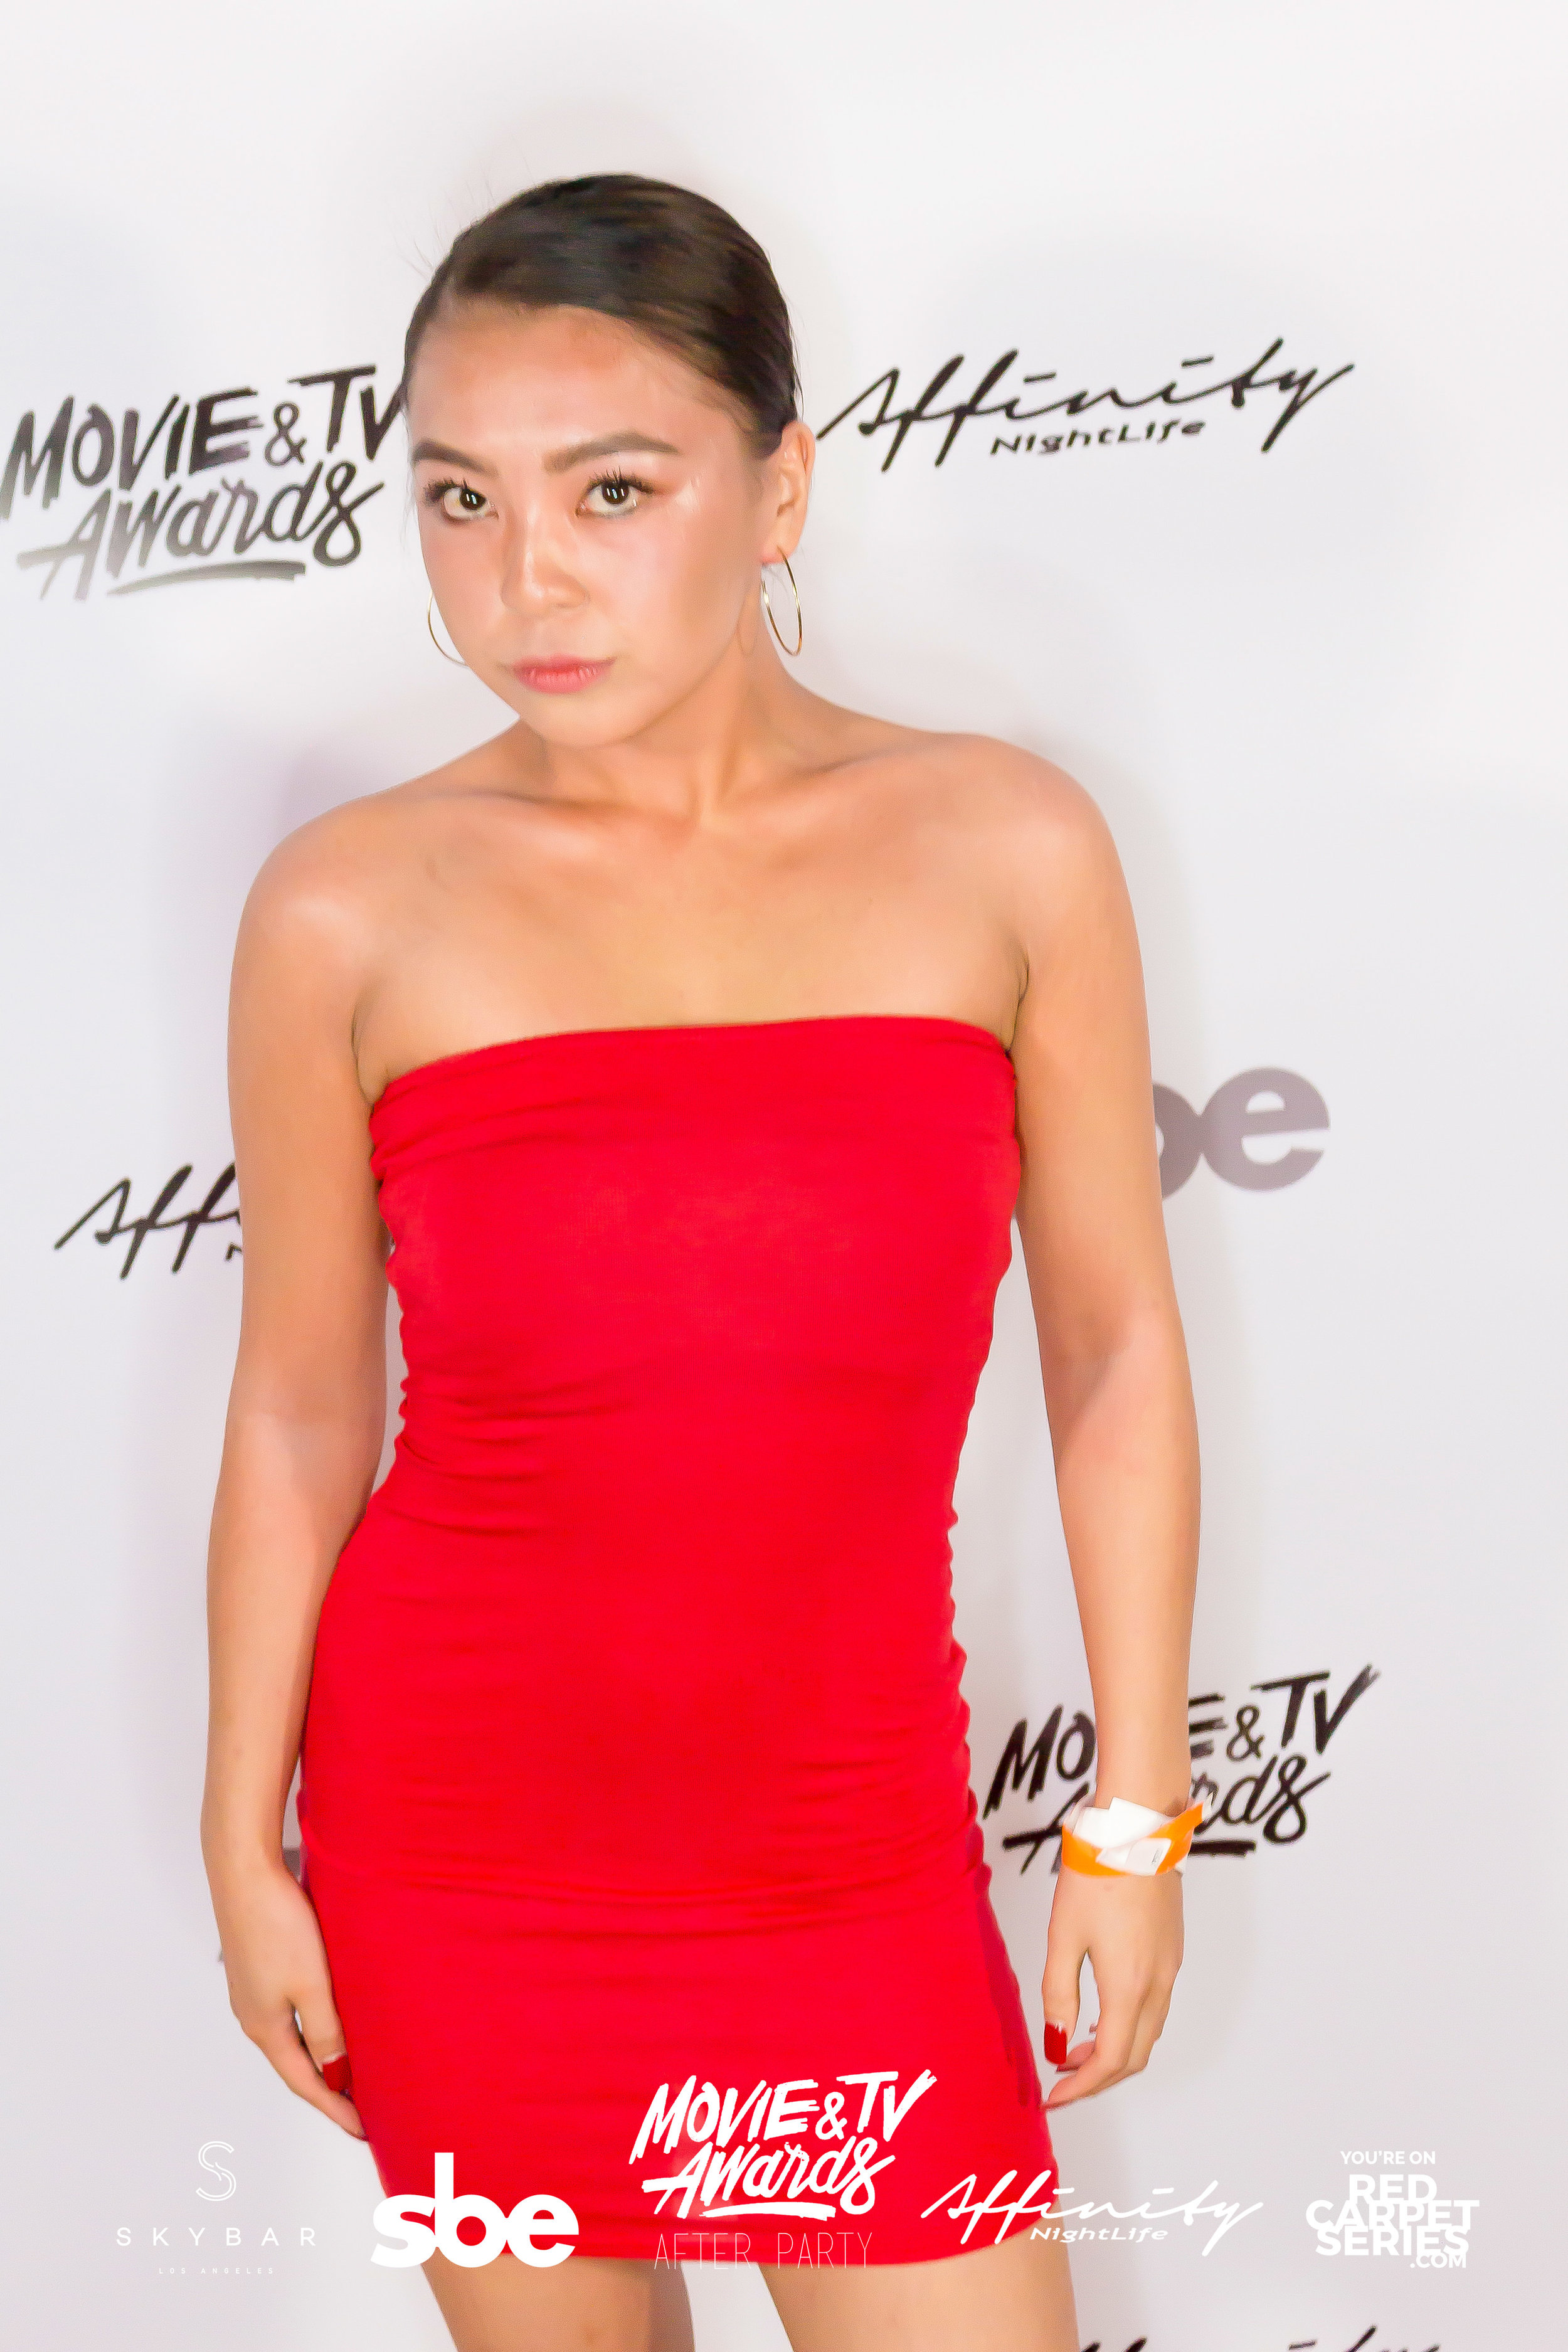 Affinity Nightlife MTV Movie & TV Awards After Party - Skybar at Mondrian - 06-15-19 - Vol. 2_60.jpg